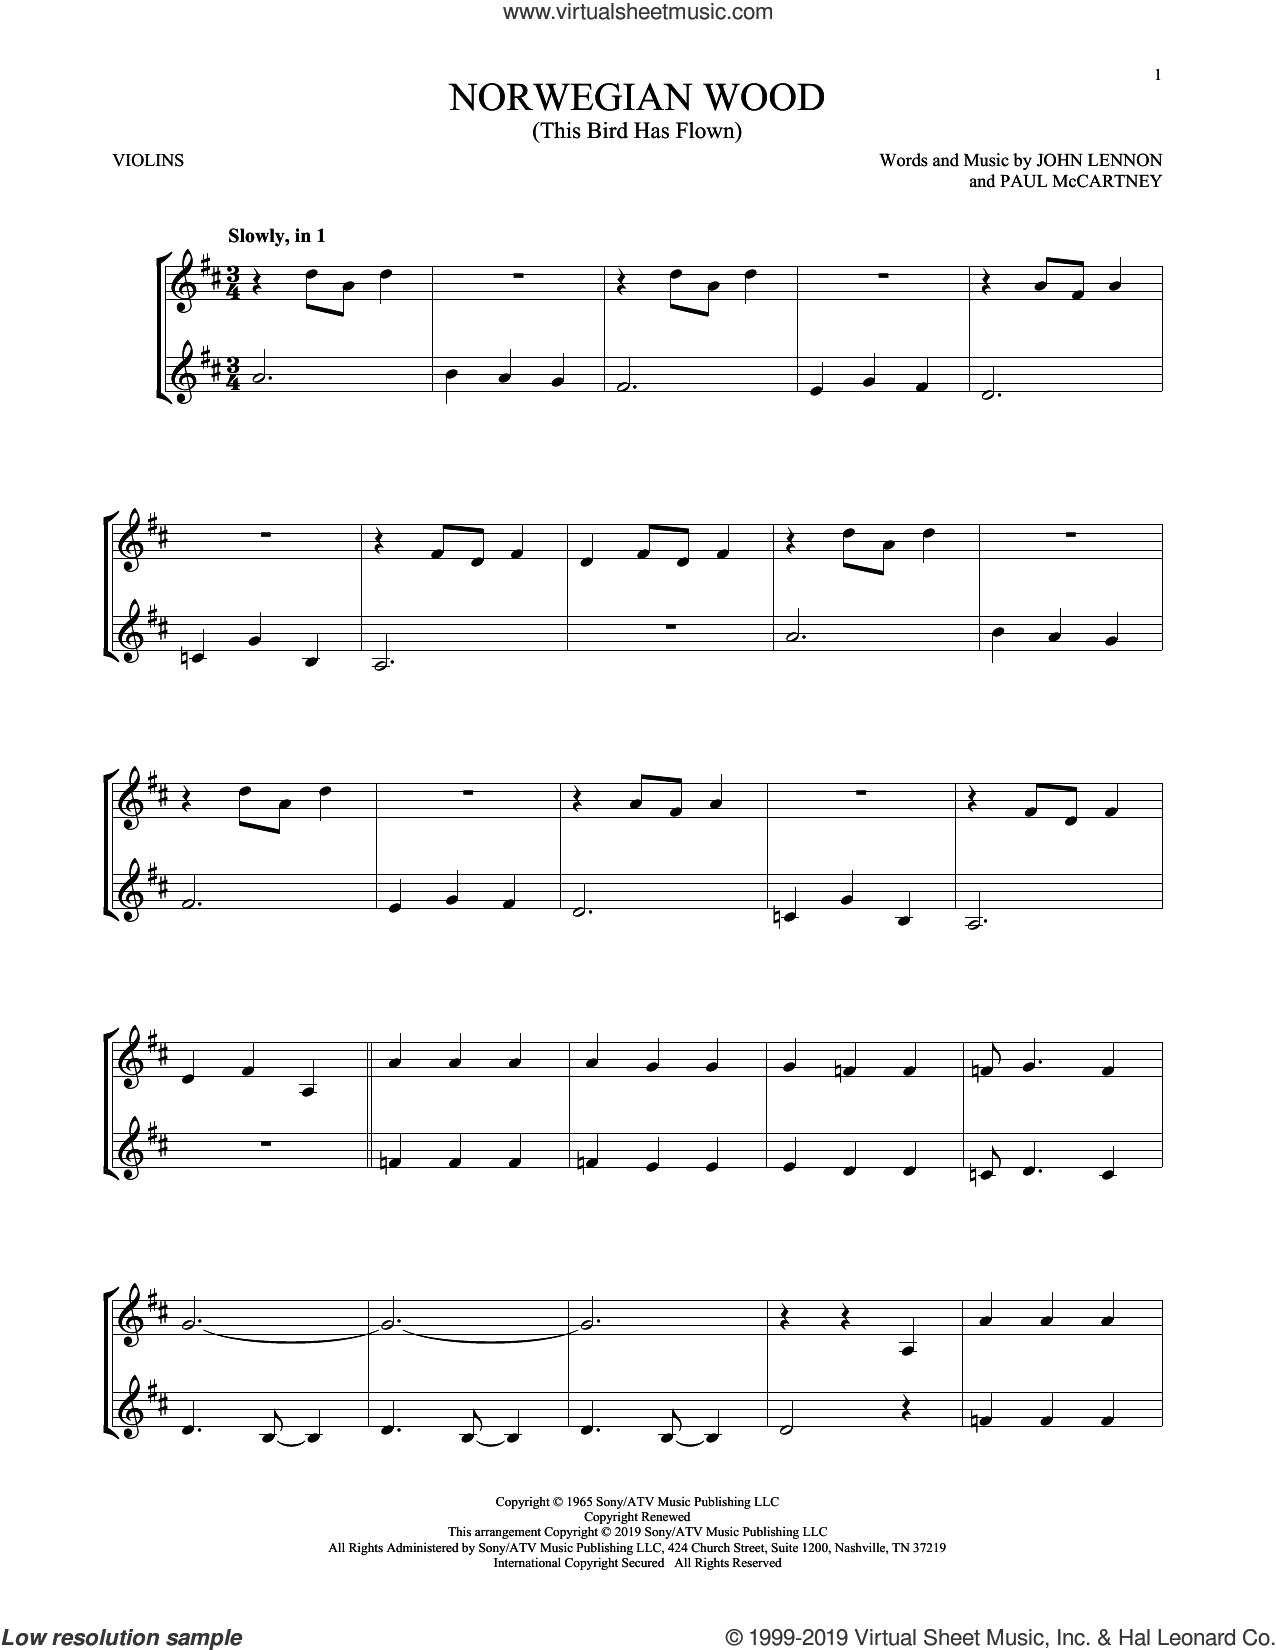 Norwegian Wood (This Bird Has Flown) sheet music for two violins (duets, violin duets) by The Beatles, John Lennon and Paul McCartney, intermediate skill level